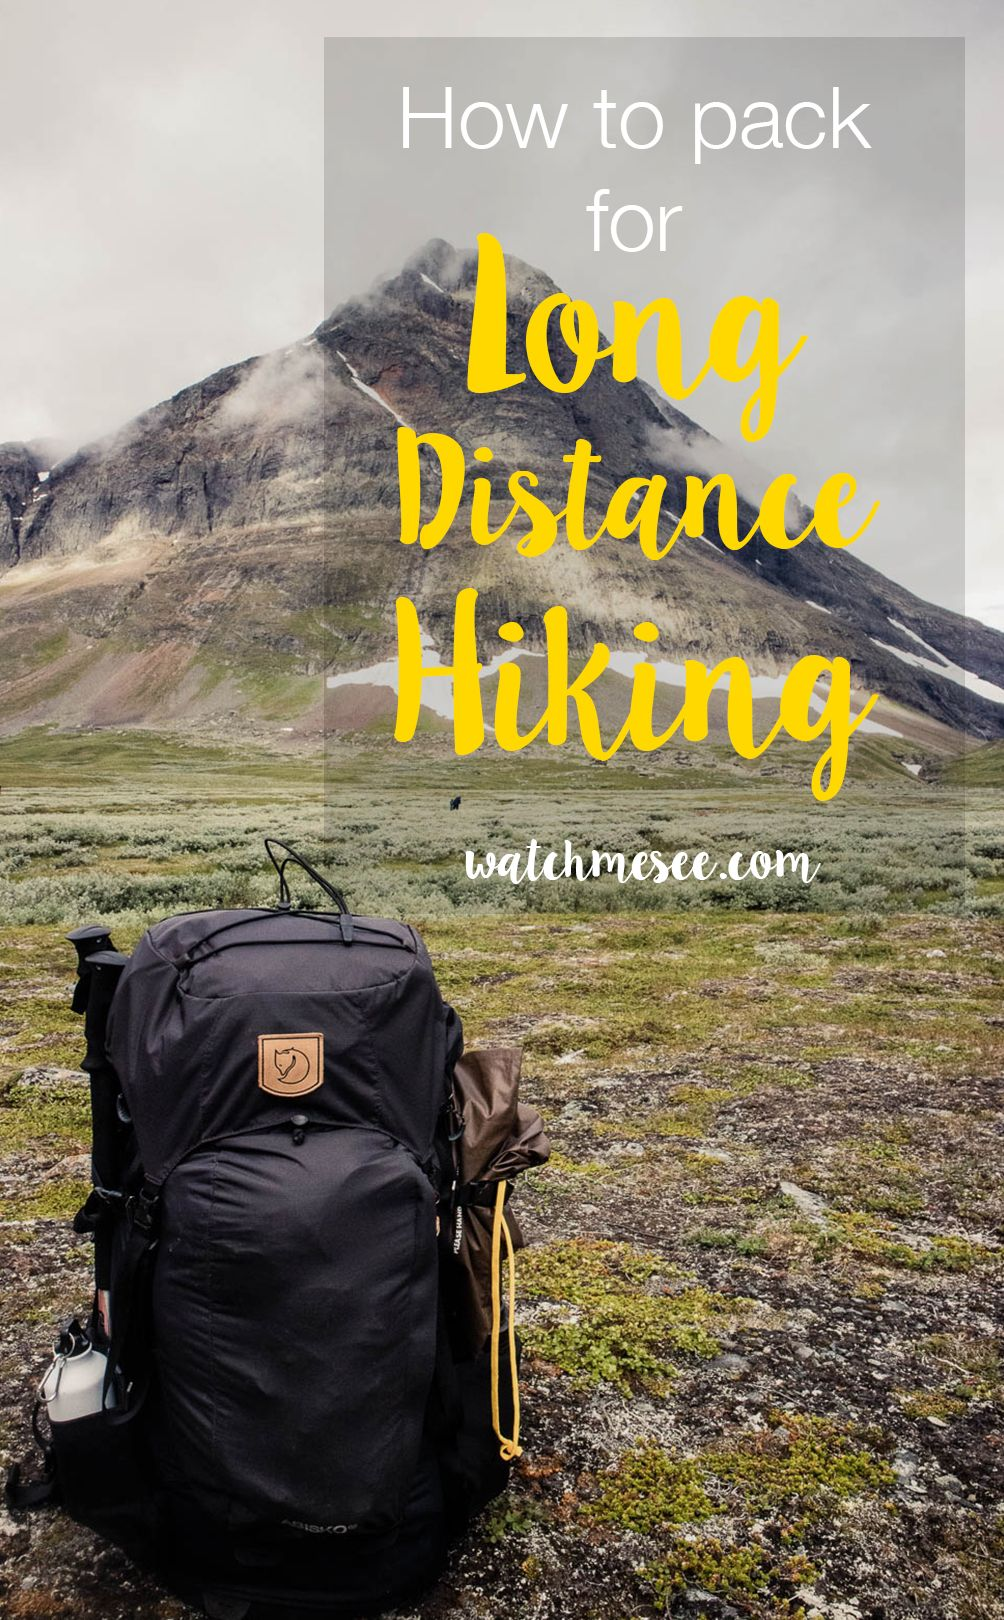 Photo of How and what to Pack for Long-Distance Hiking and Trekking – Watch Me See